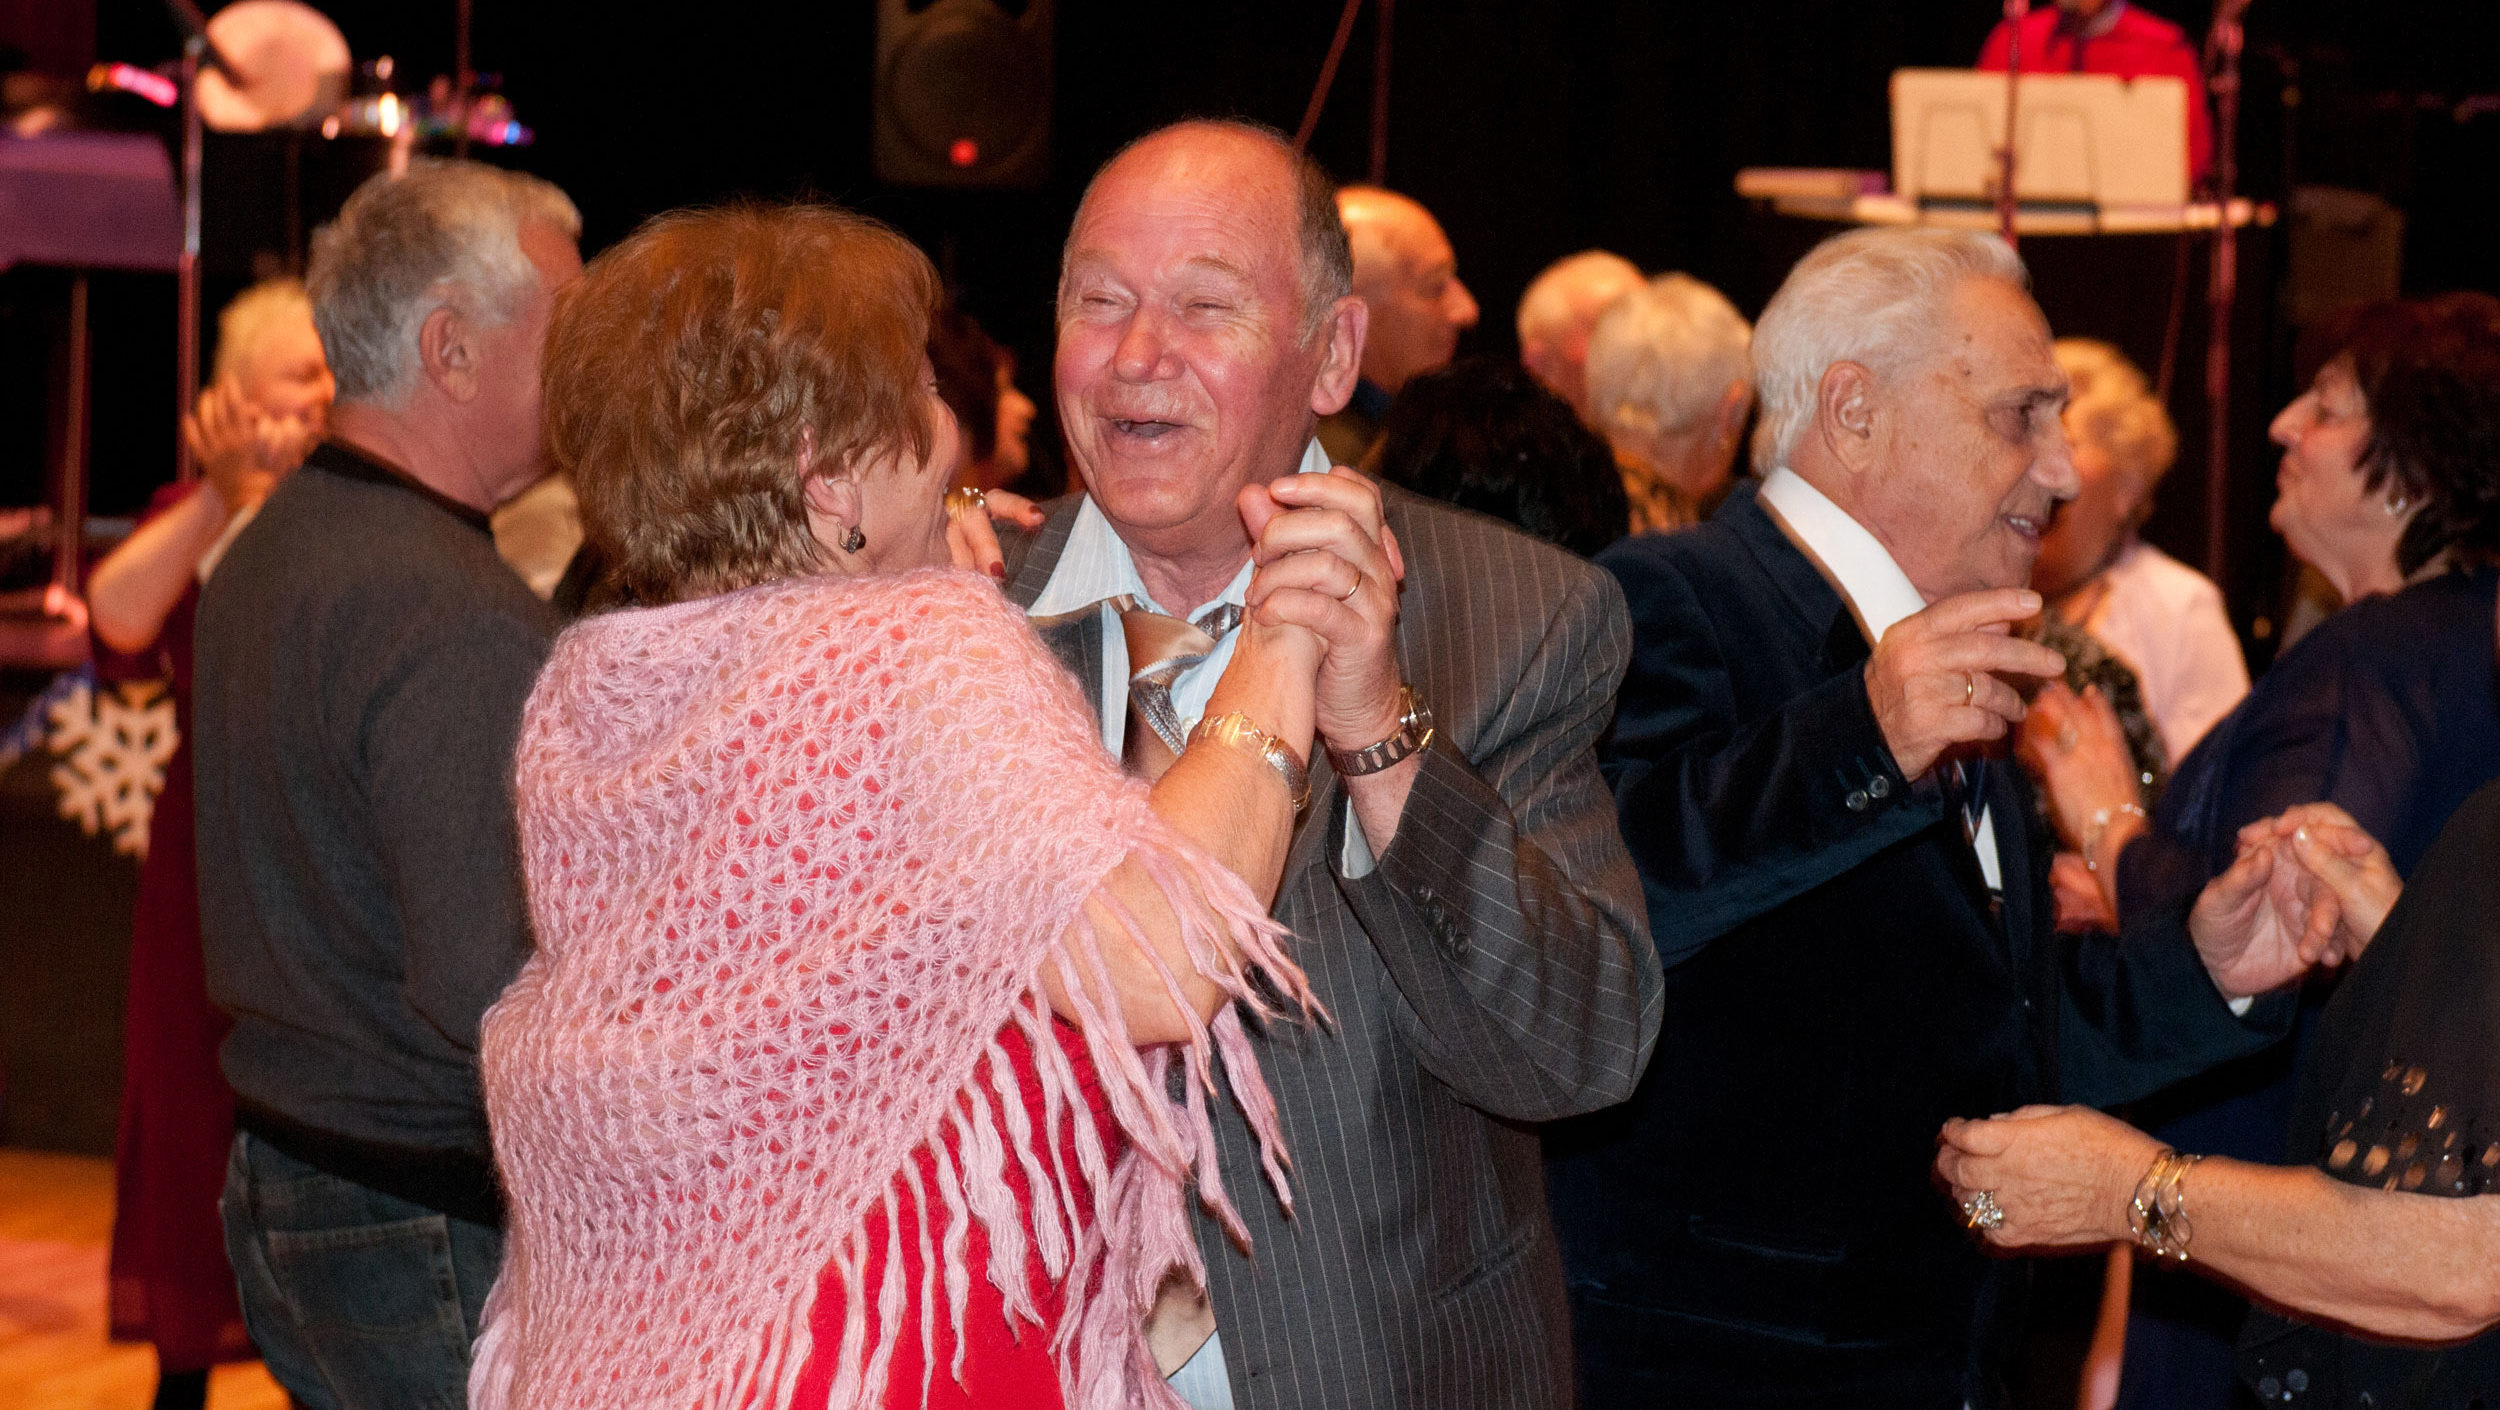 The San Francisco JCC has ended its Russian-language programs, such as this dance event for older Russian Jewish émigrés. (Courtesy/JCCSF)